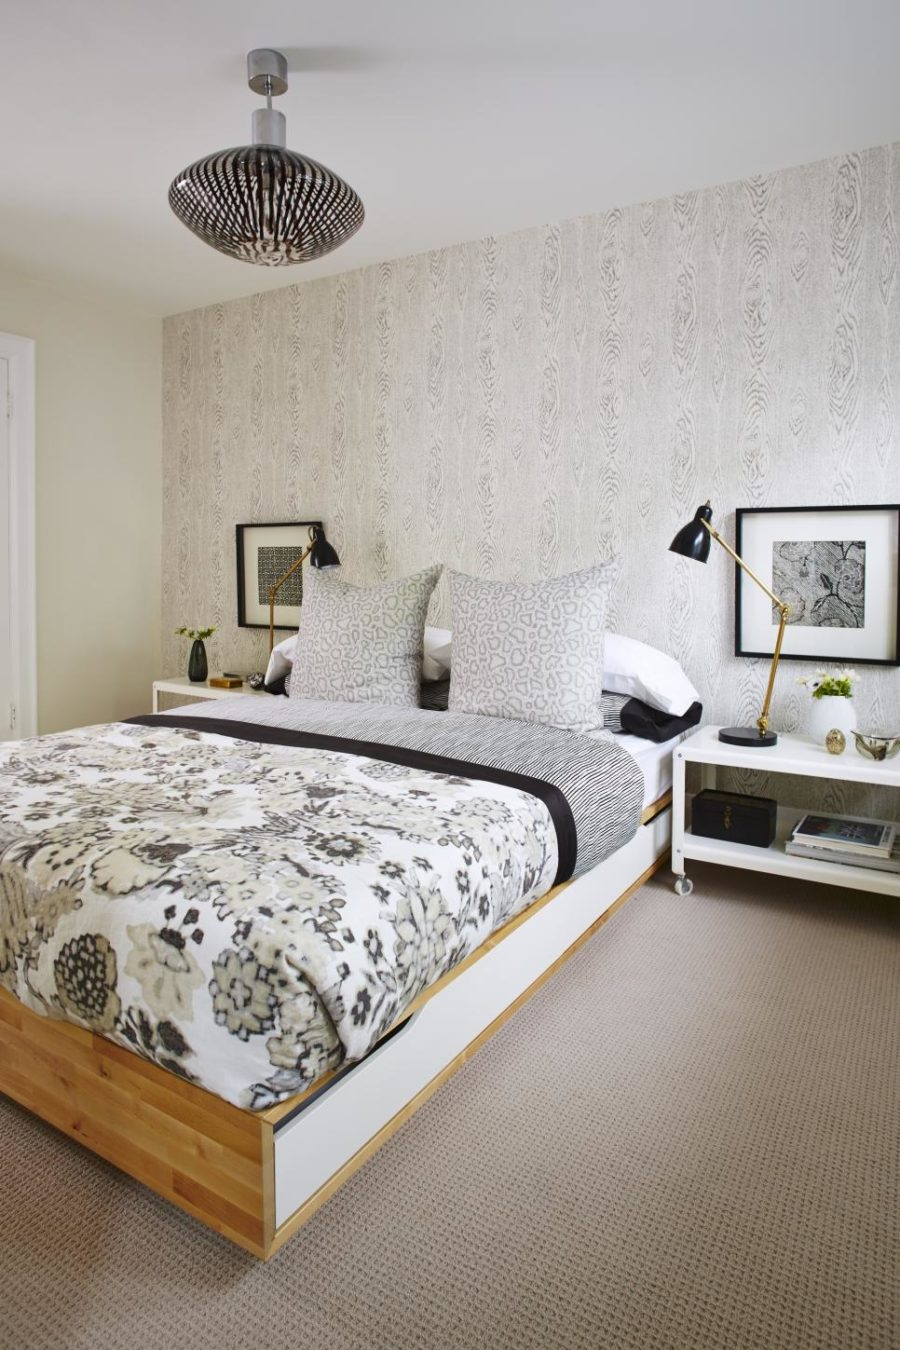 Mix of traditionalism and modernity in bedroom by Sarah Richardson